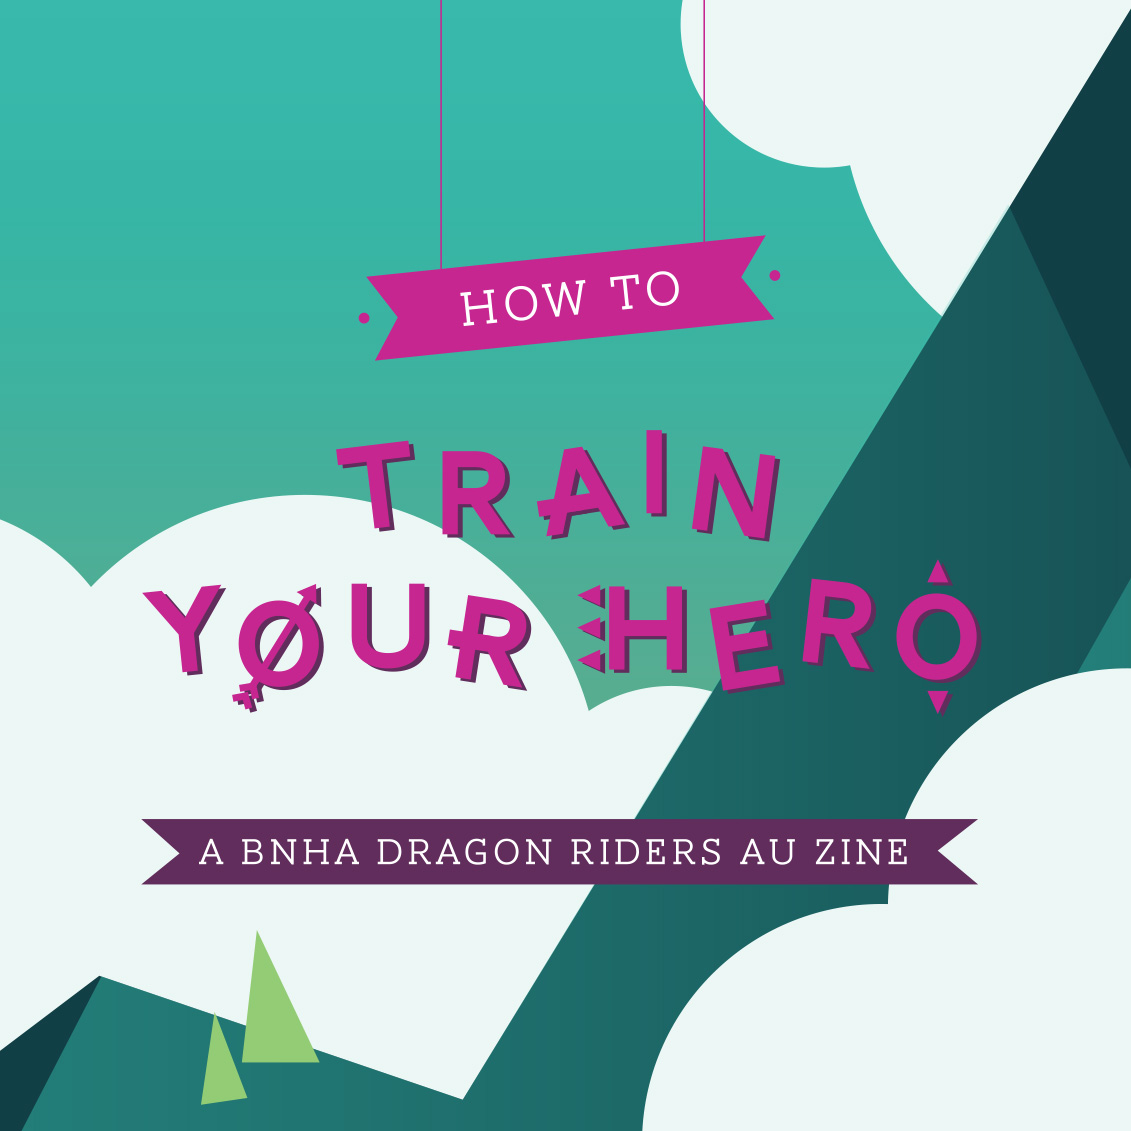 How to Train Your Hero